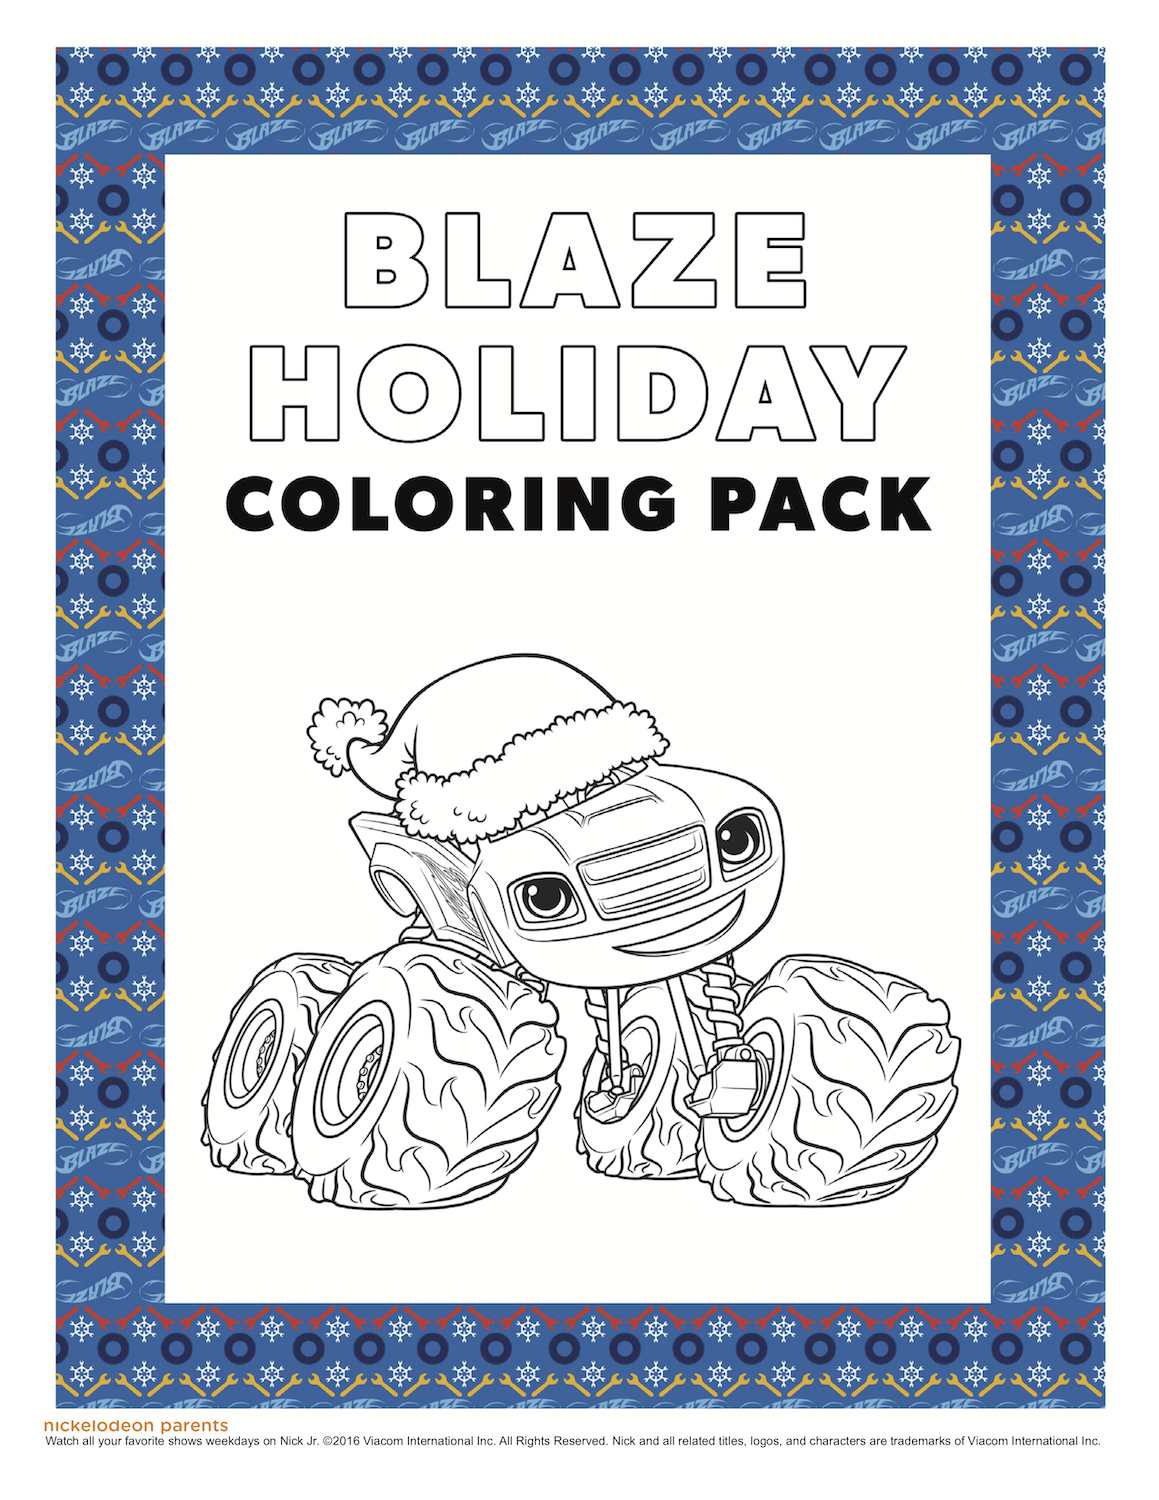 Blaze Holiday Coloring Pack